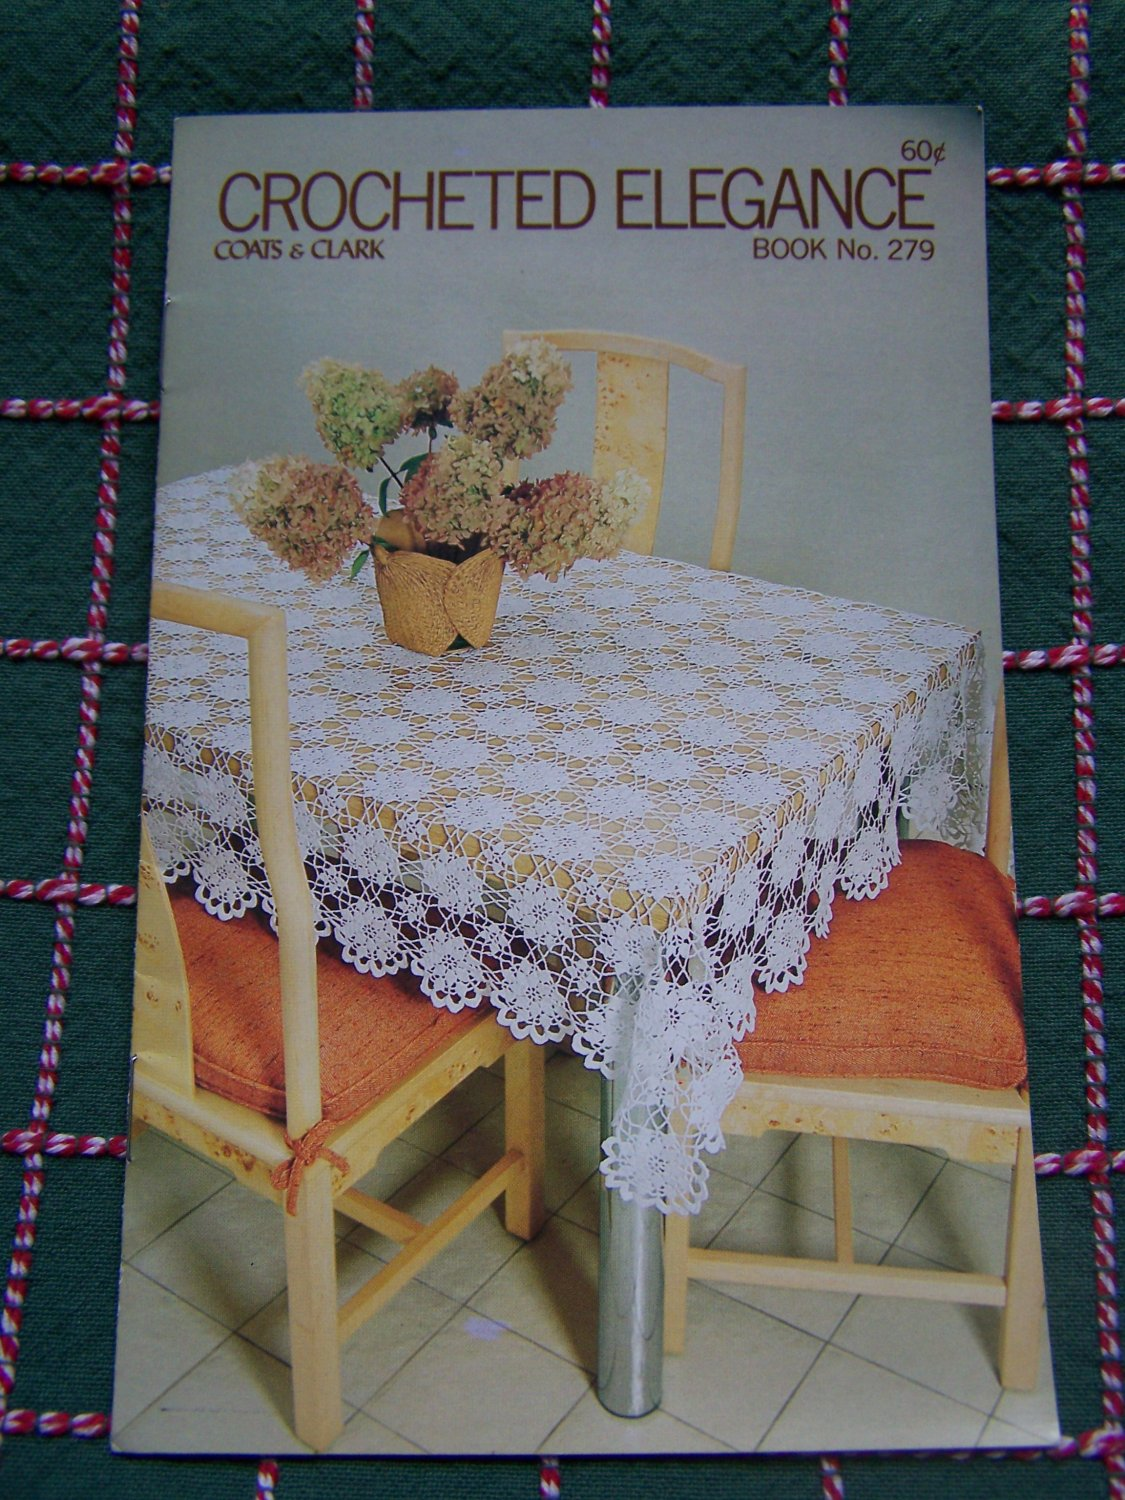 New Vintage Coats & Clark Crocheted Tablecloths Bedspreads Place Mats Doily Book 279